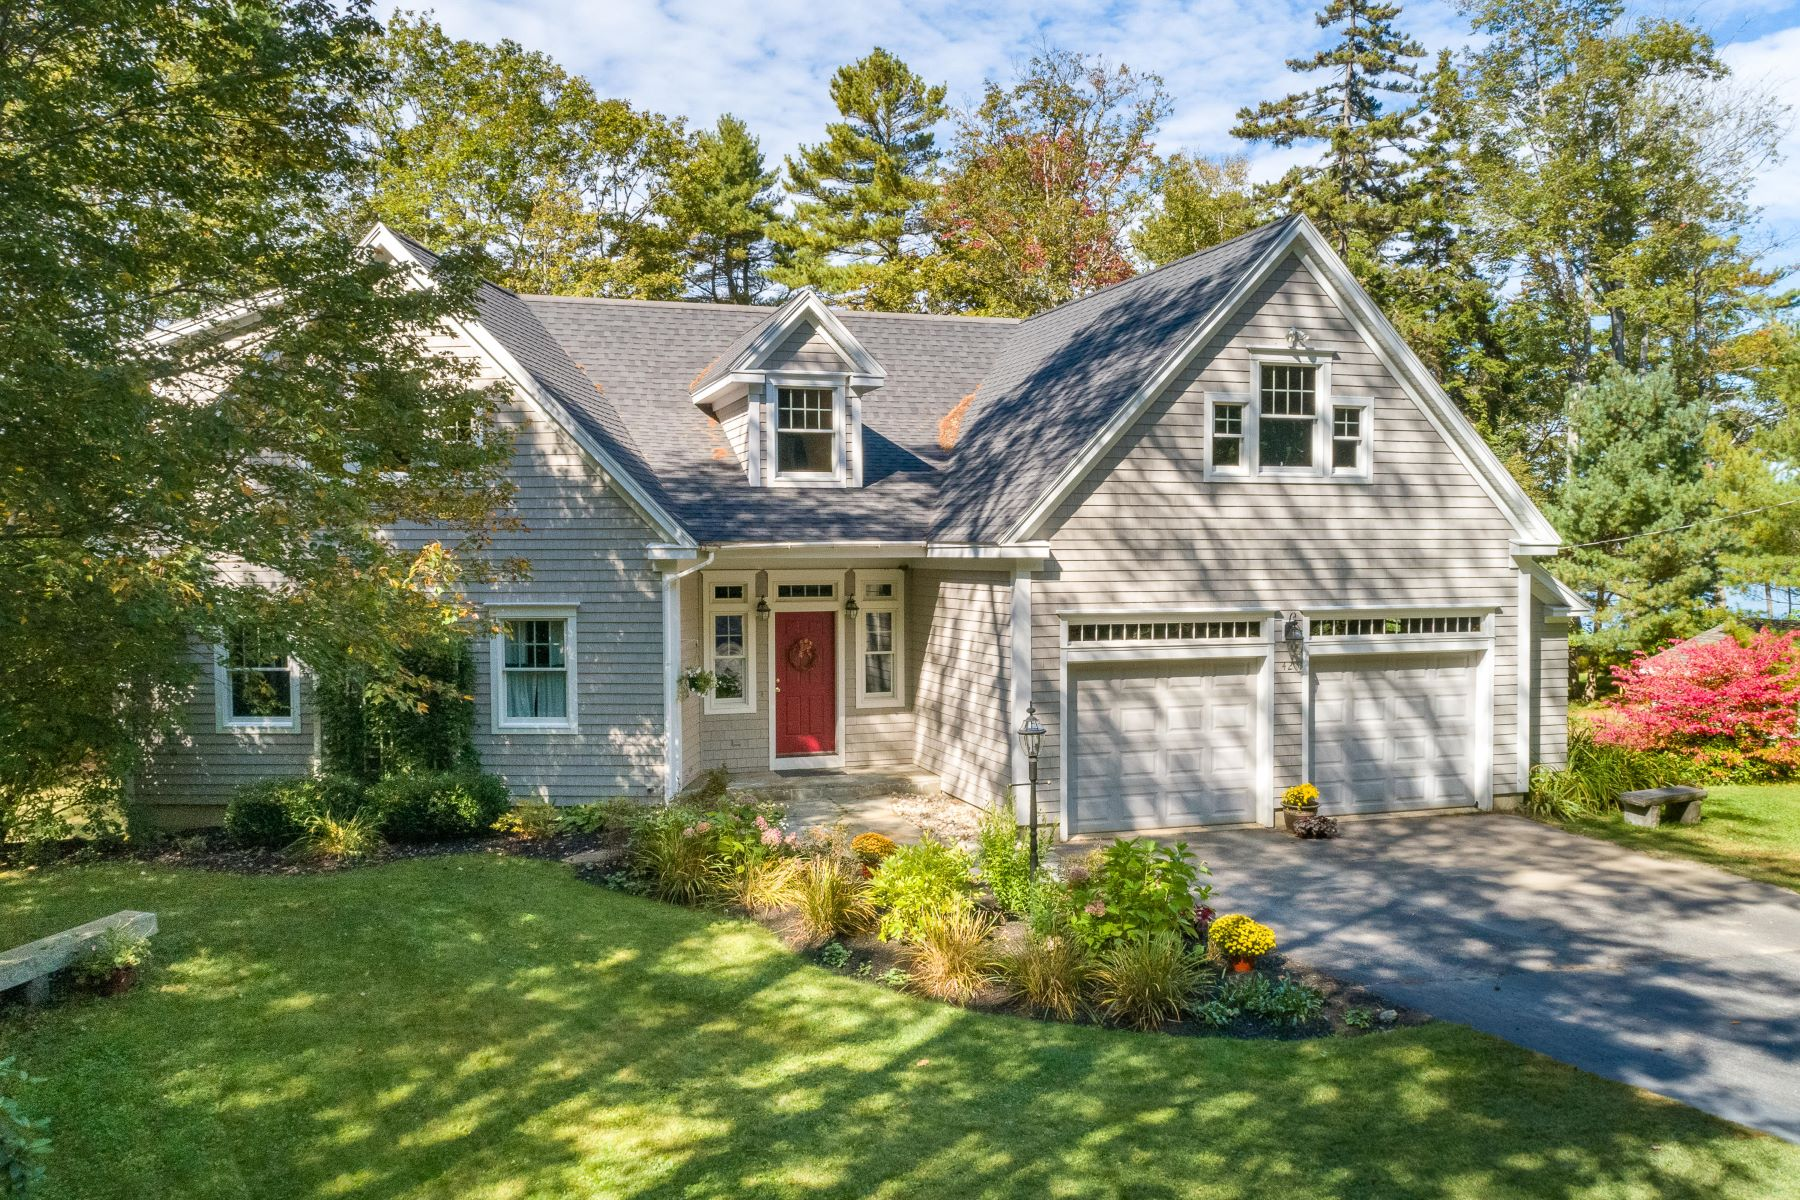 Single Family Homes for Active at 42 Narrows Lane Harpswell, Maine 04079 United States